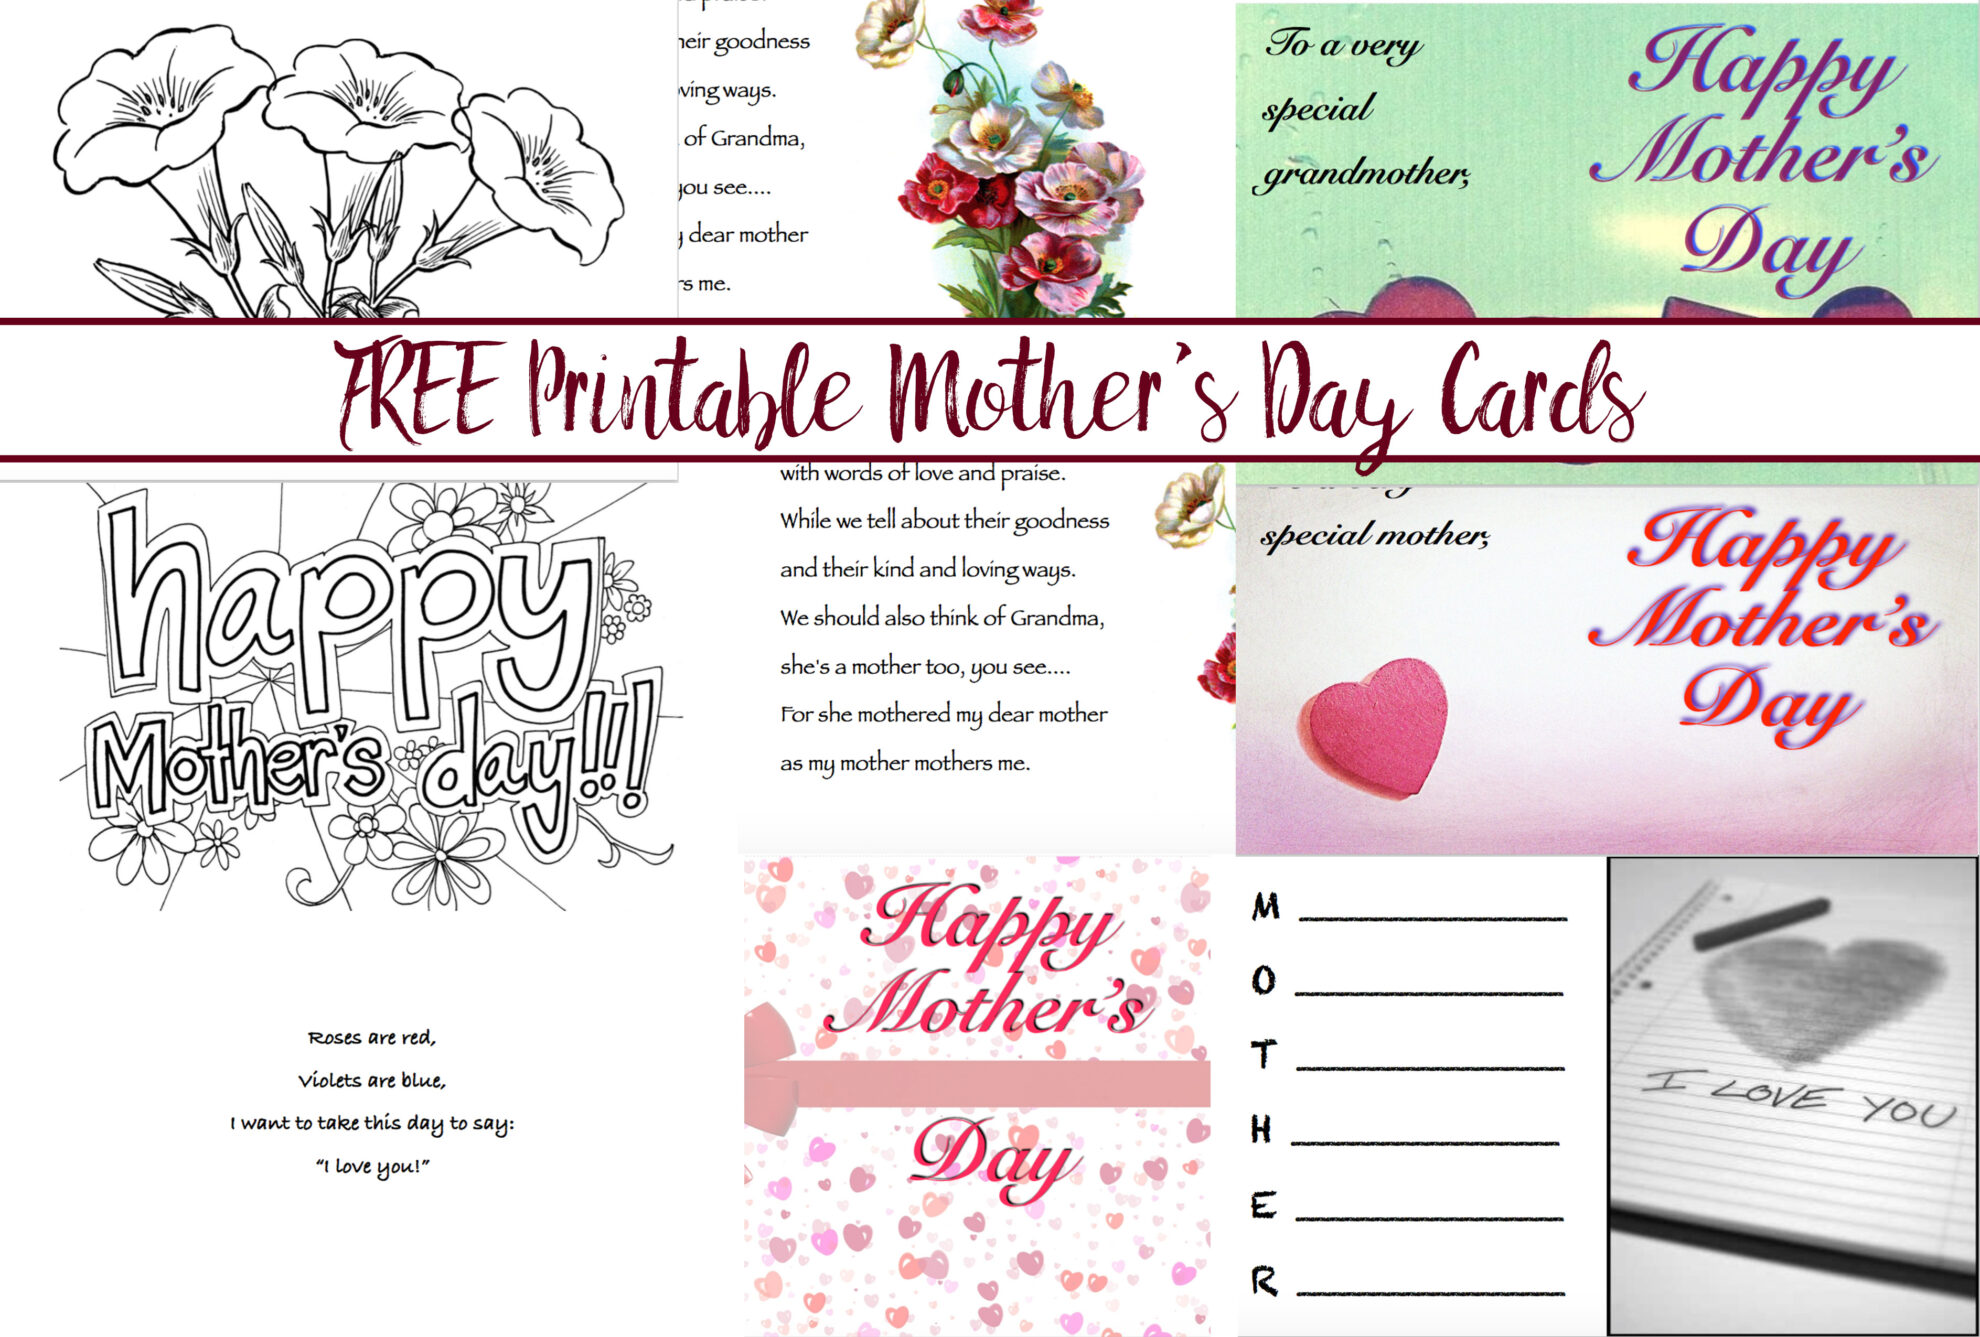 Printable Mother's Day Cards: Different Designs for All Ages